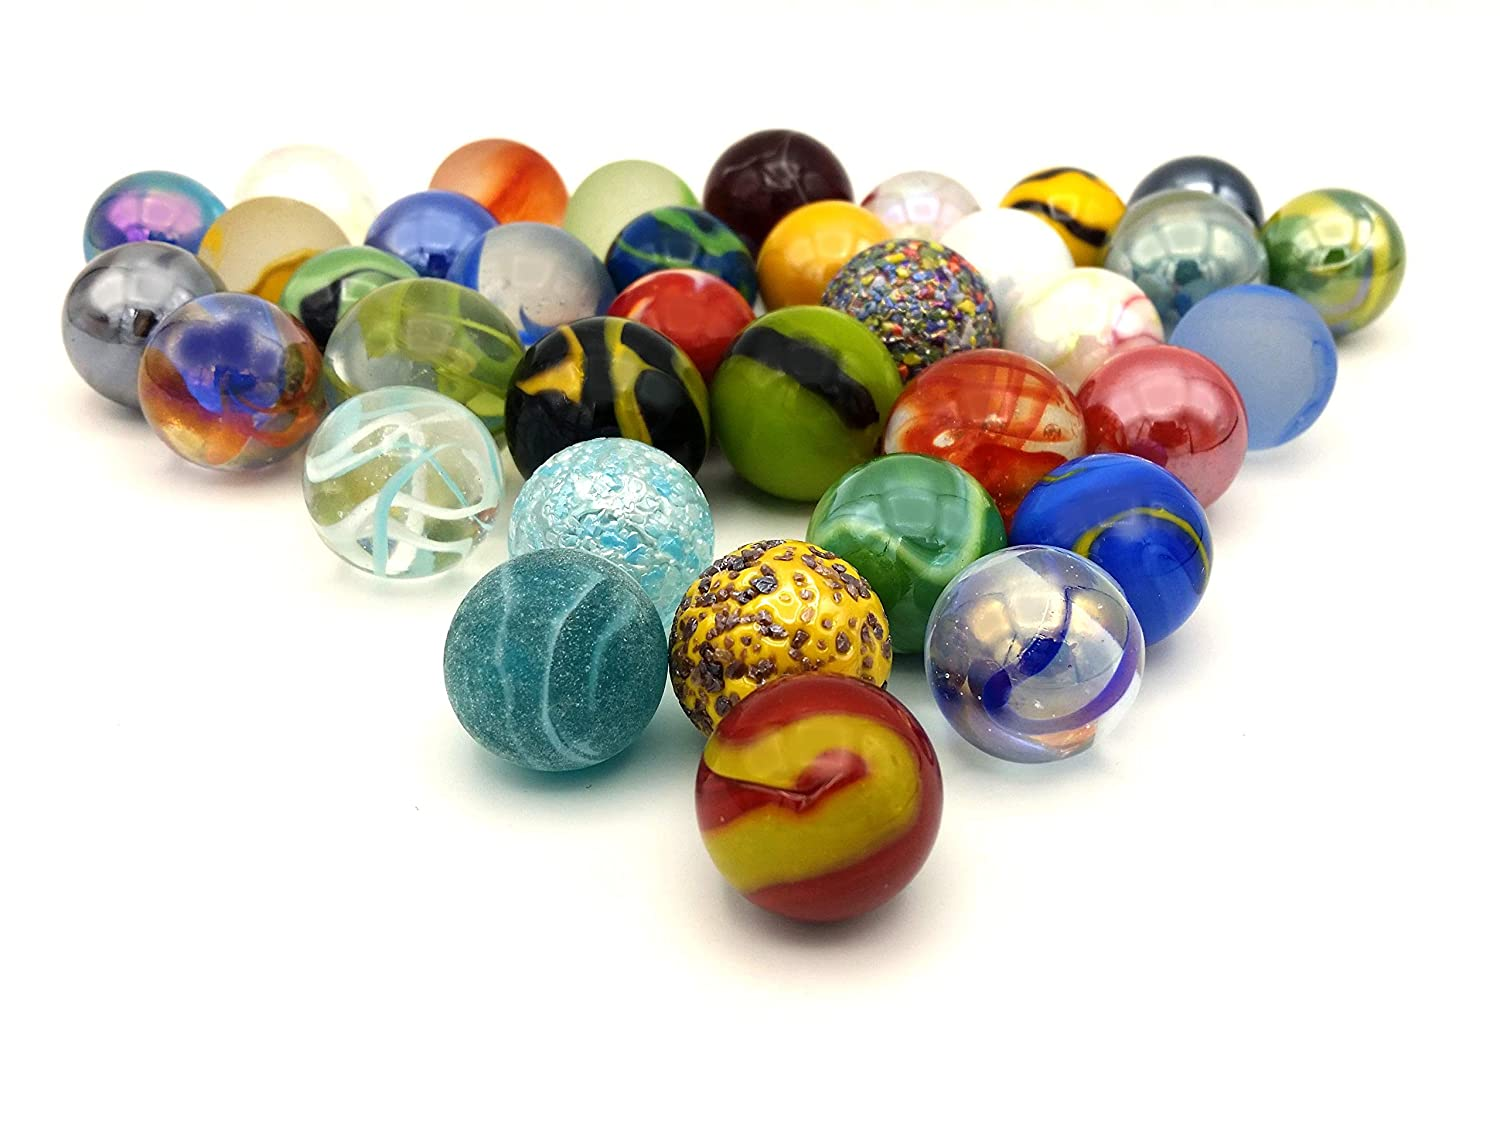 Mega Marbles Glass Shooters Set of 50 Assorted Colored Bulk 1 Shooter Marble for Games Vase Fish Aquariums Decorations